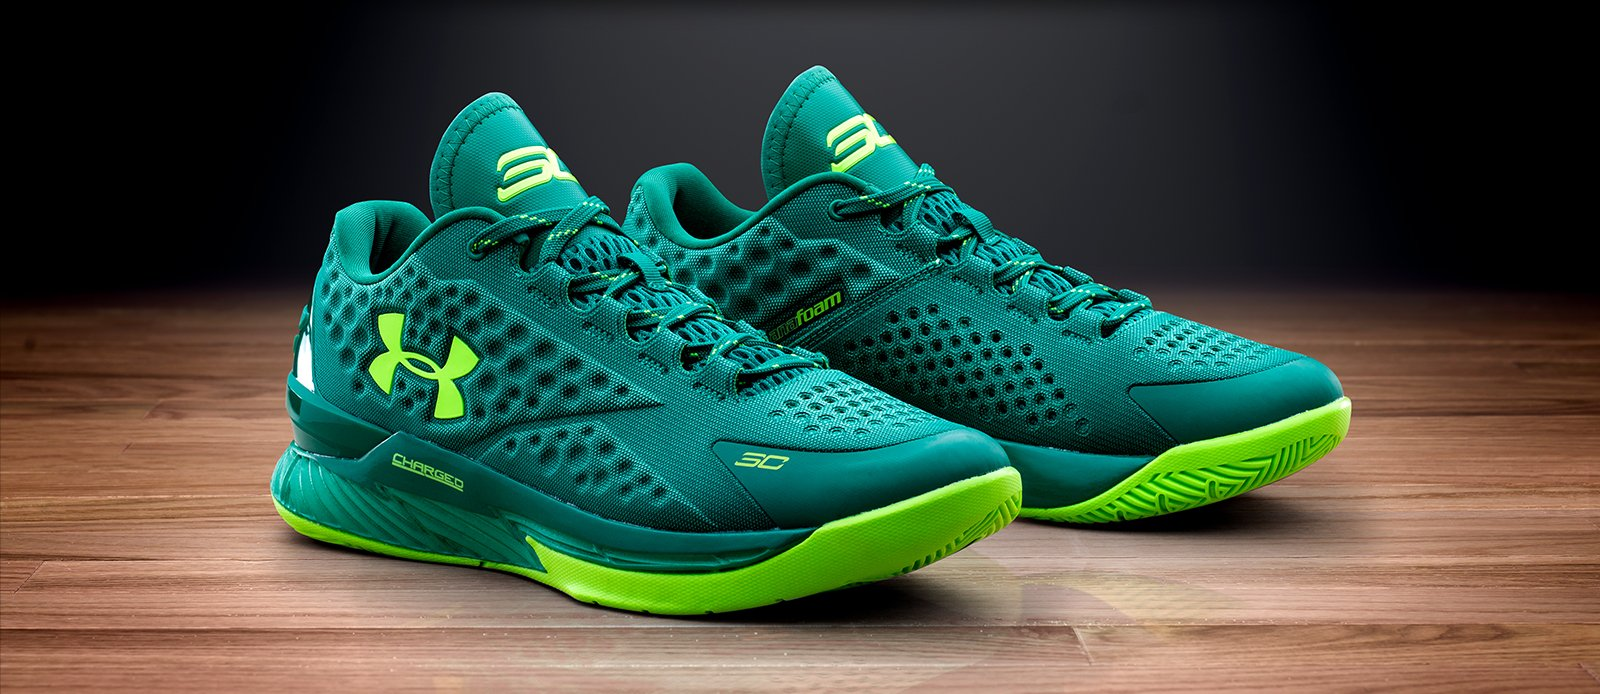 Under Armour Curry One Low 'Golf' - Scratch Green